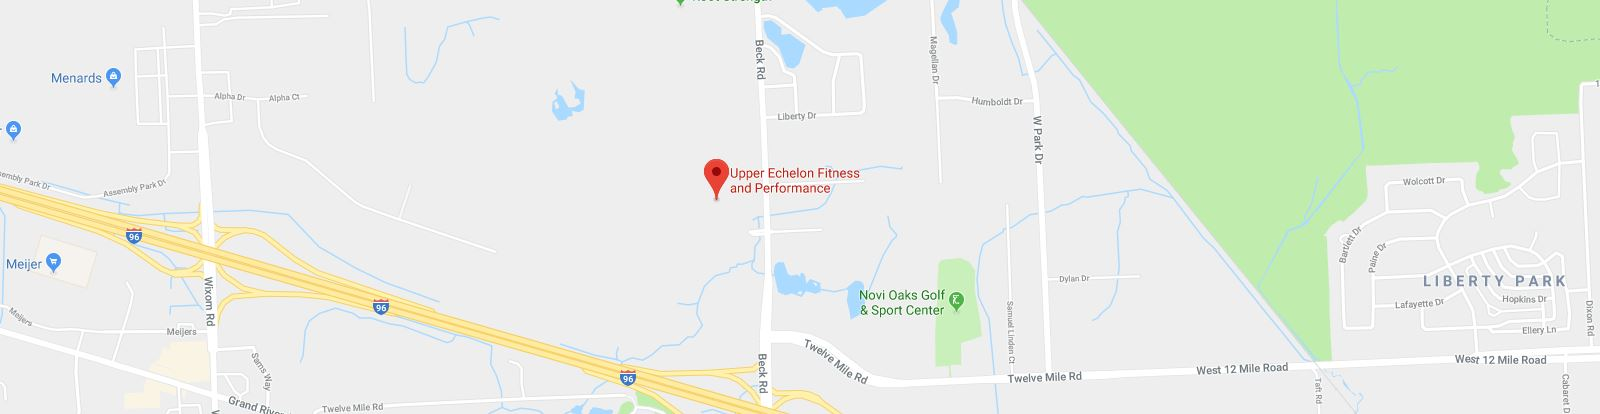 directions-to-upper-echelon-fitness-and-performance-in-wixom-michigan